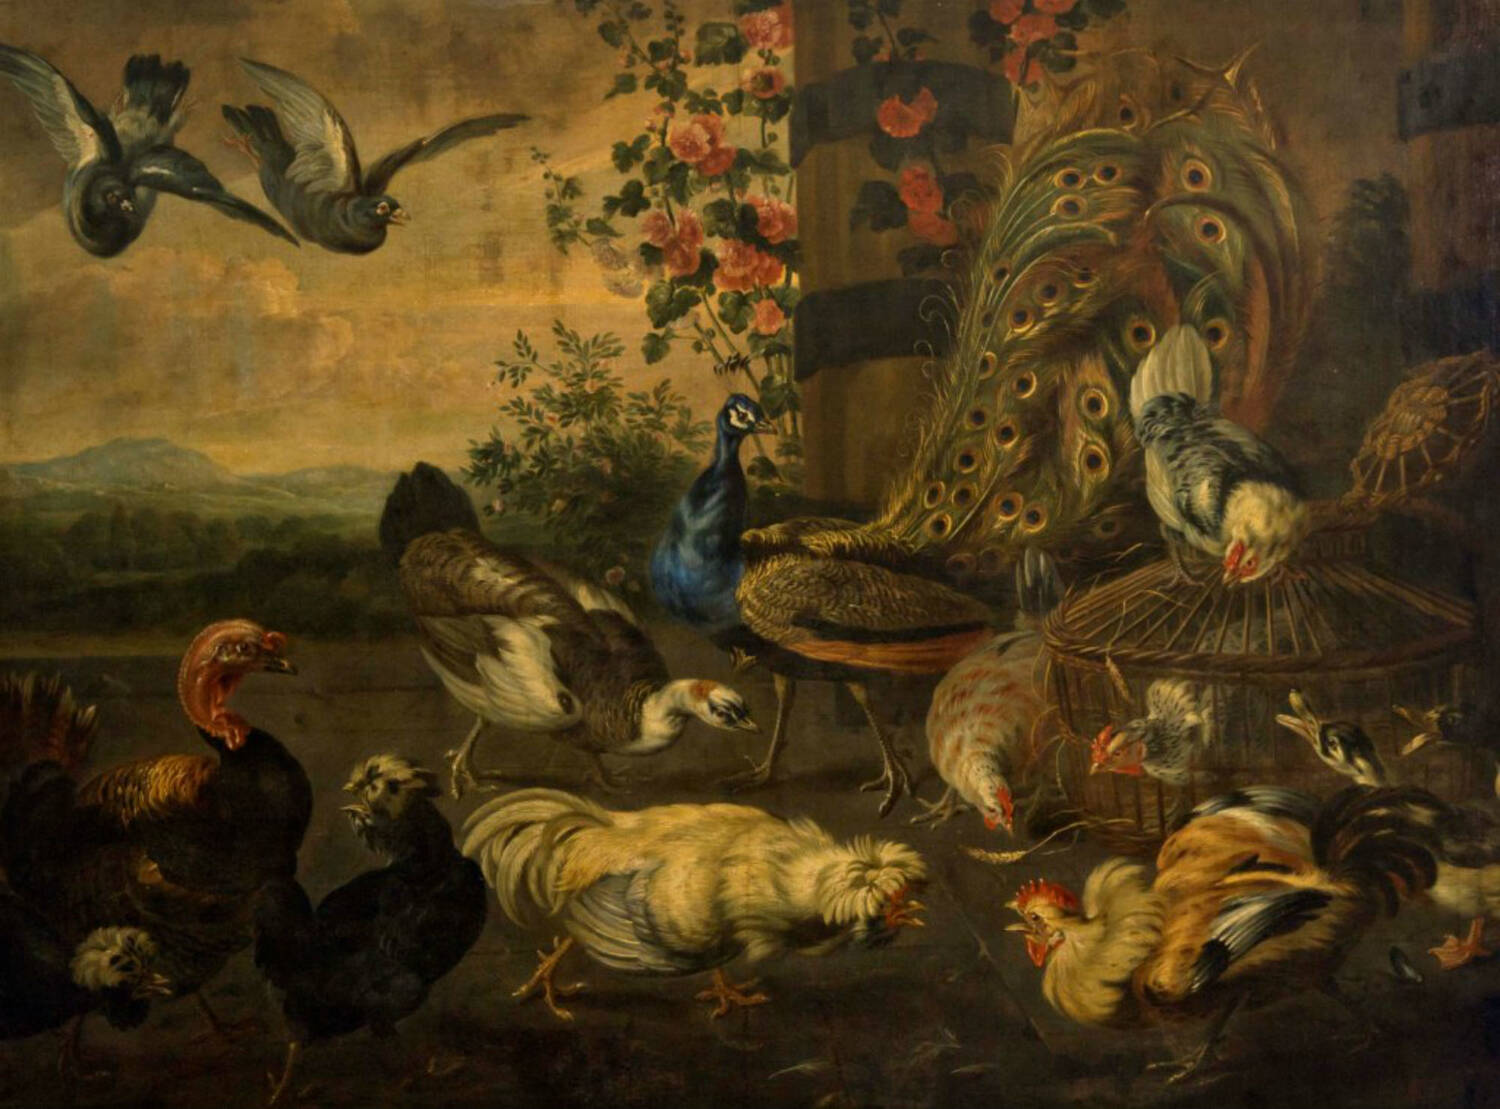 A 17th-century oil painting at Hill of Tarvit showing an array of fighting birds. Chickens, ducks and a peacock stand on the ground, pecking at each other. Two pigeons are swooping down from the sky in the top left.